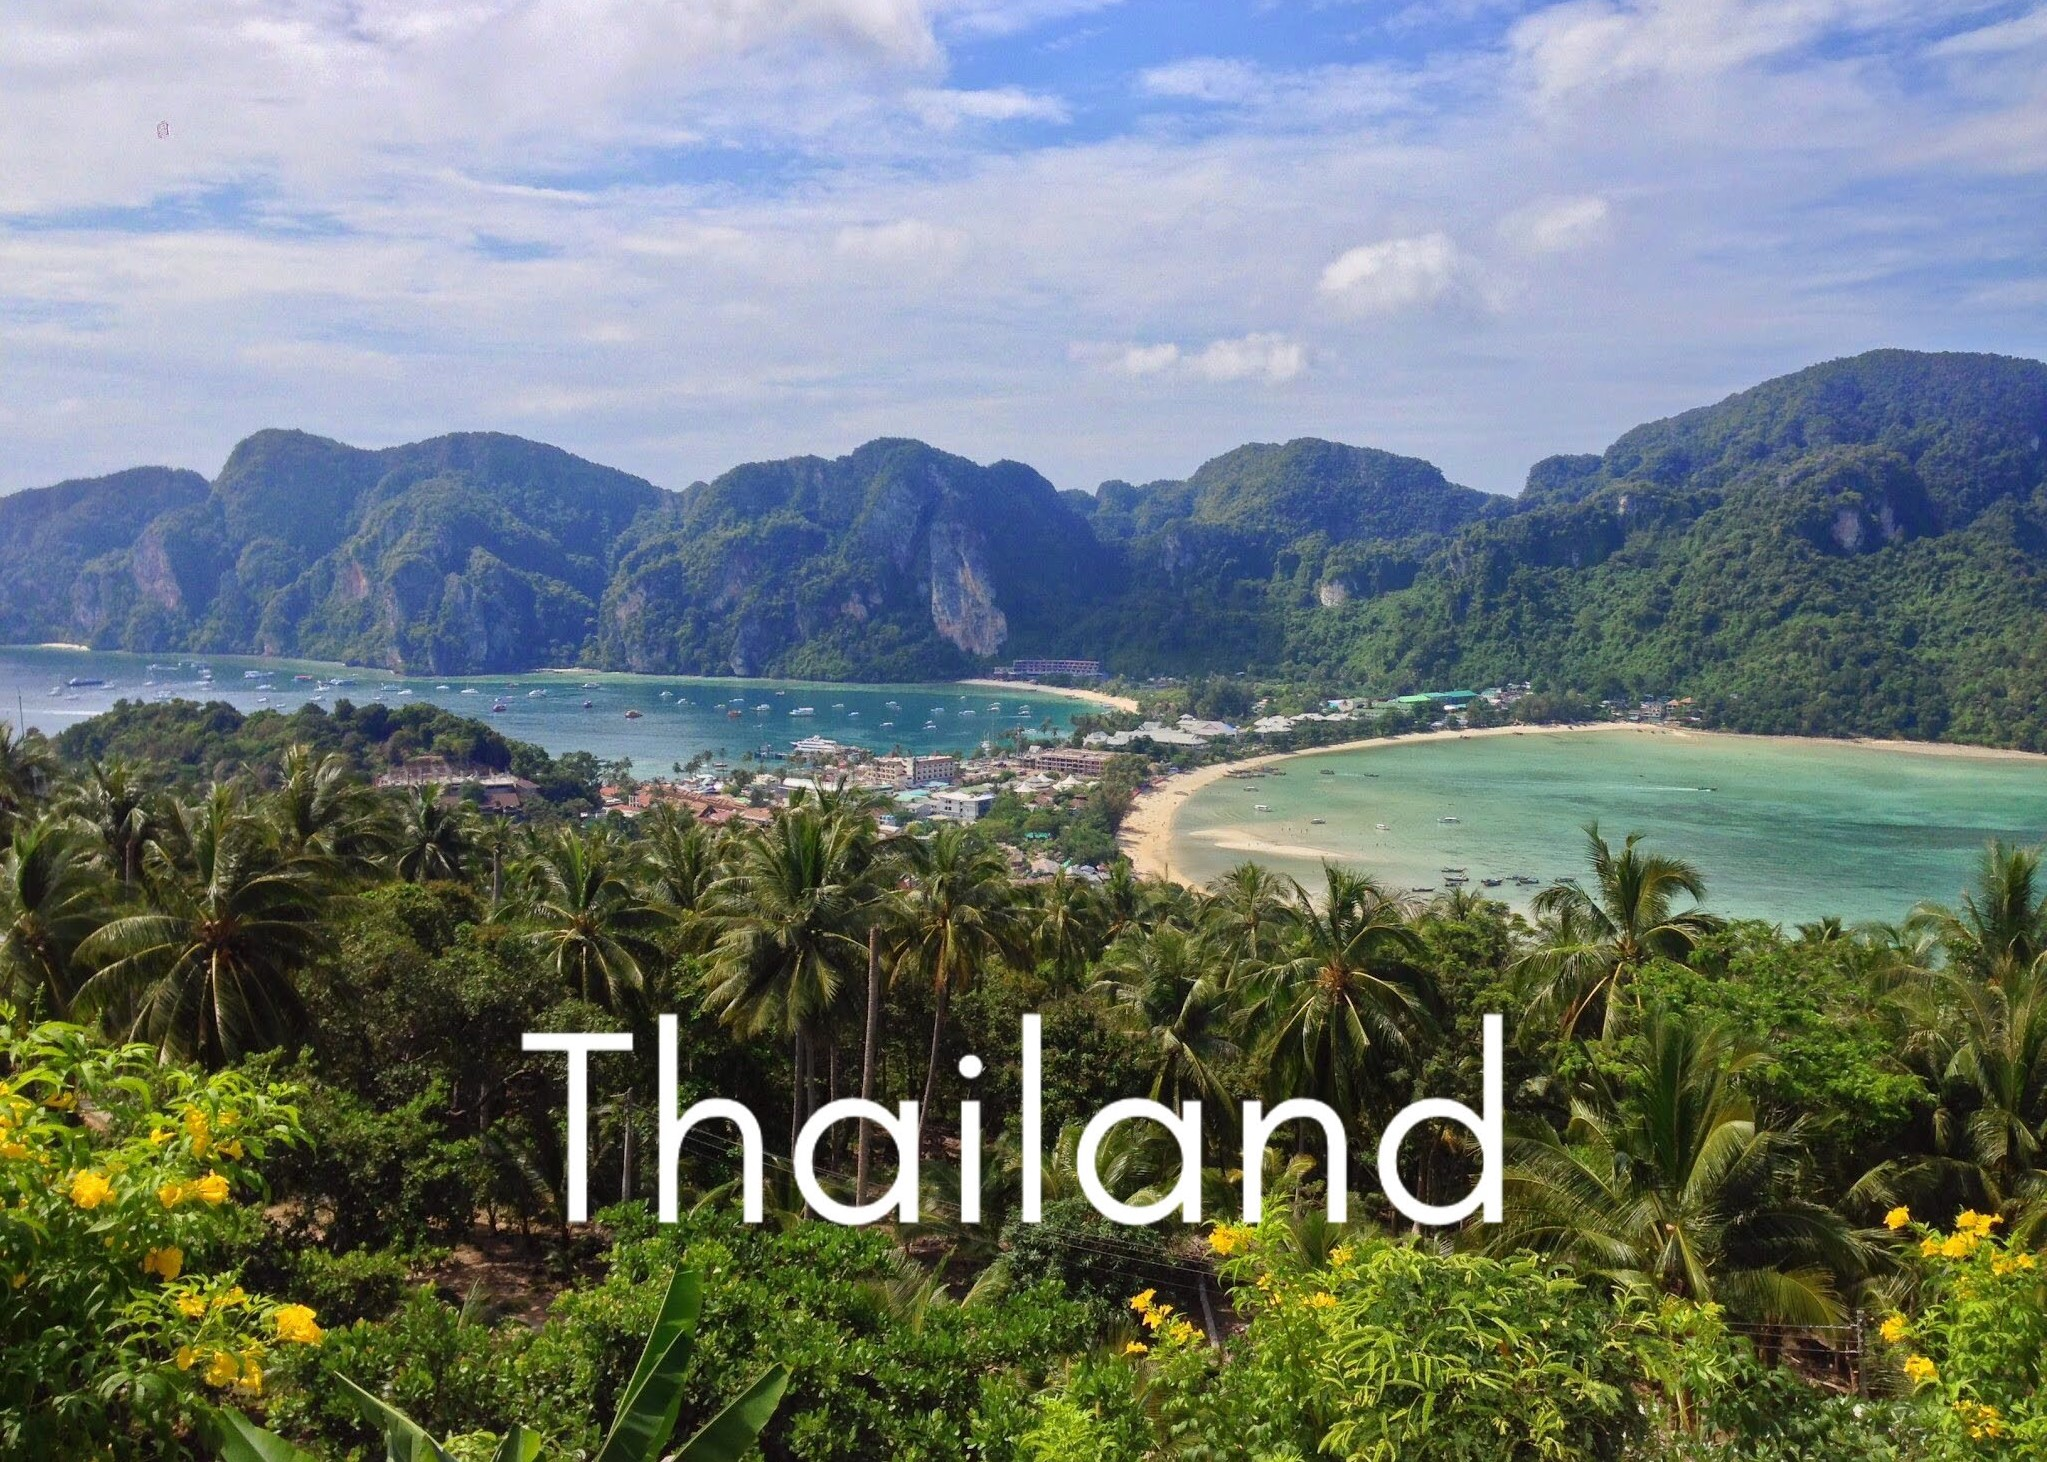 Thailand, wanderdaze, blog, travelling, travel blog,